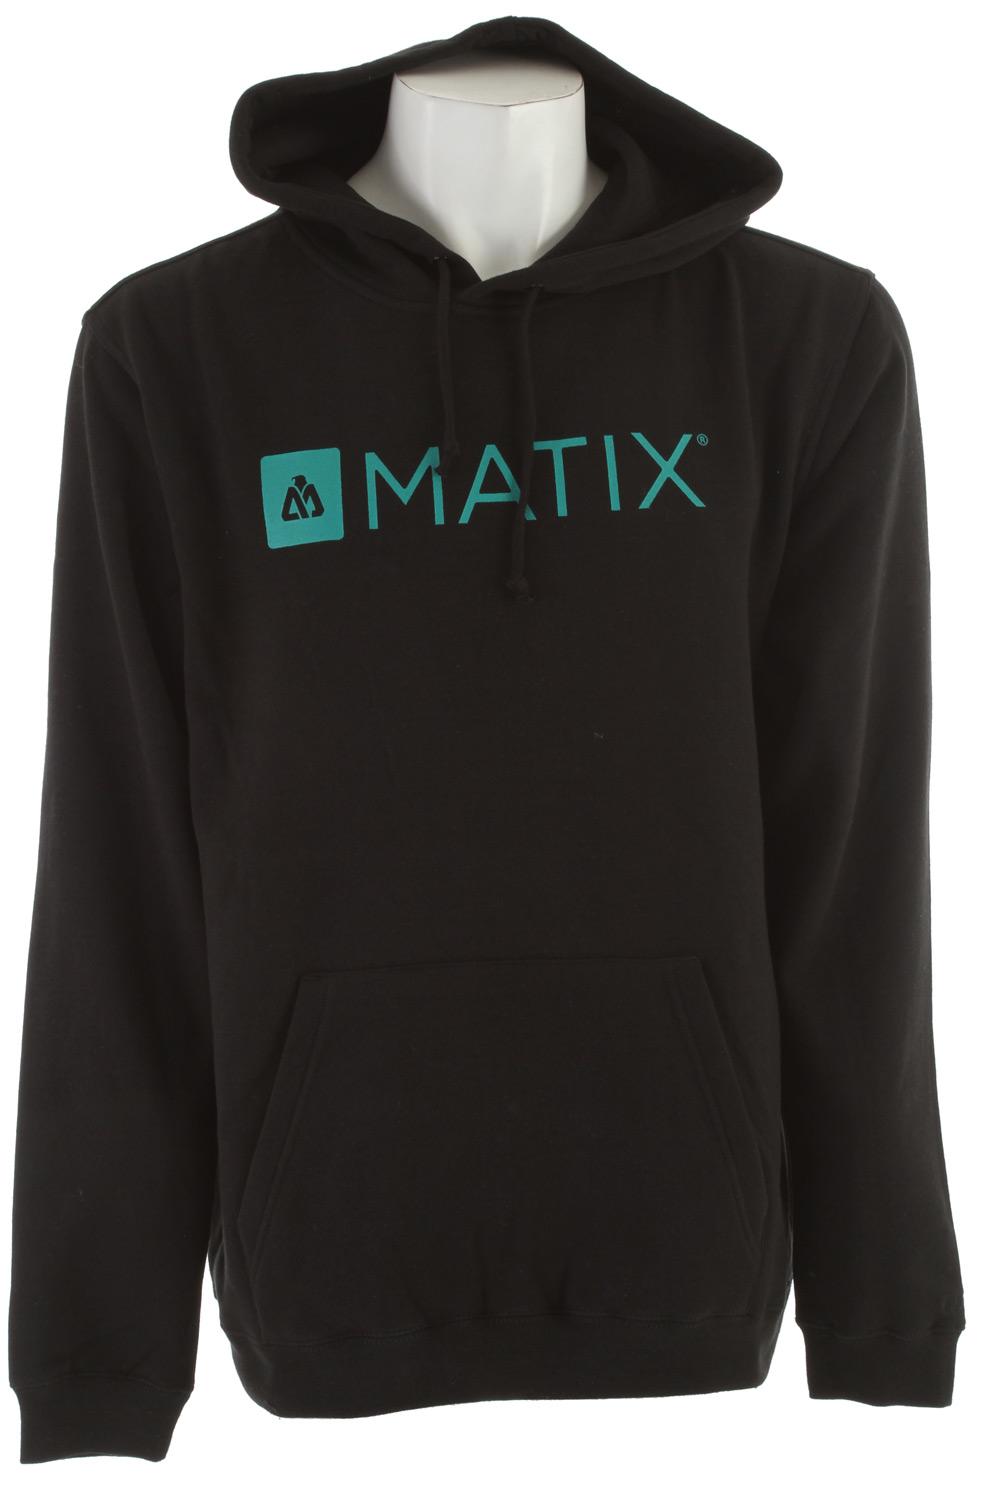 Key Features of the Matix Monolin Hood Hoodie: Custom fit 80% cotton/20% poly Center chest Monolin inkprint with Monovert back hit and Monoset embroidery at left sleeve on custom hooded sweatshirt - $30.95